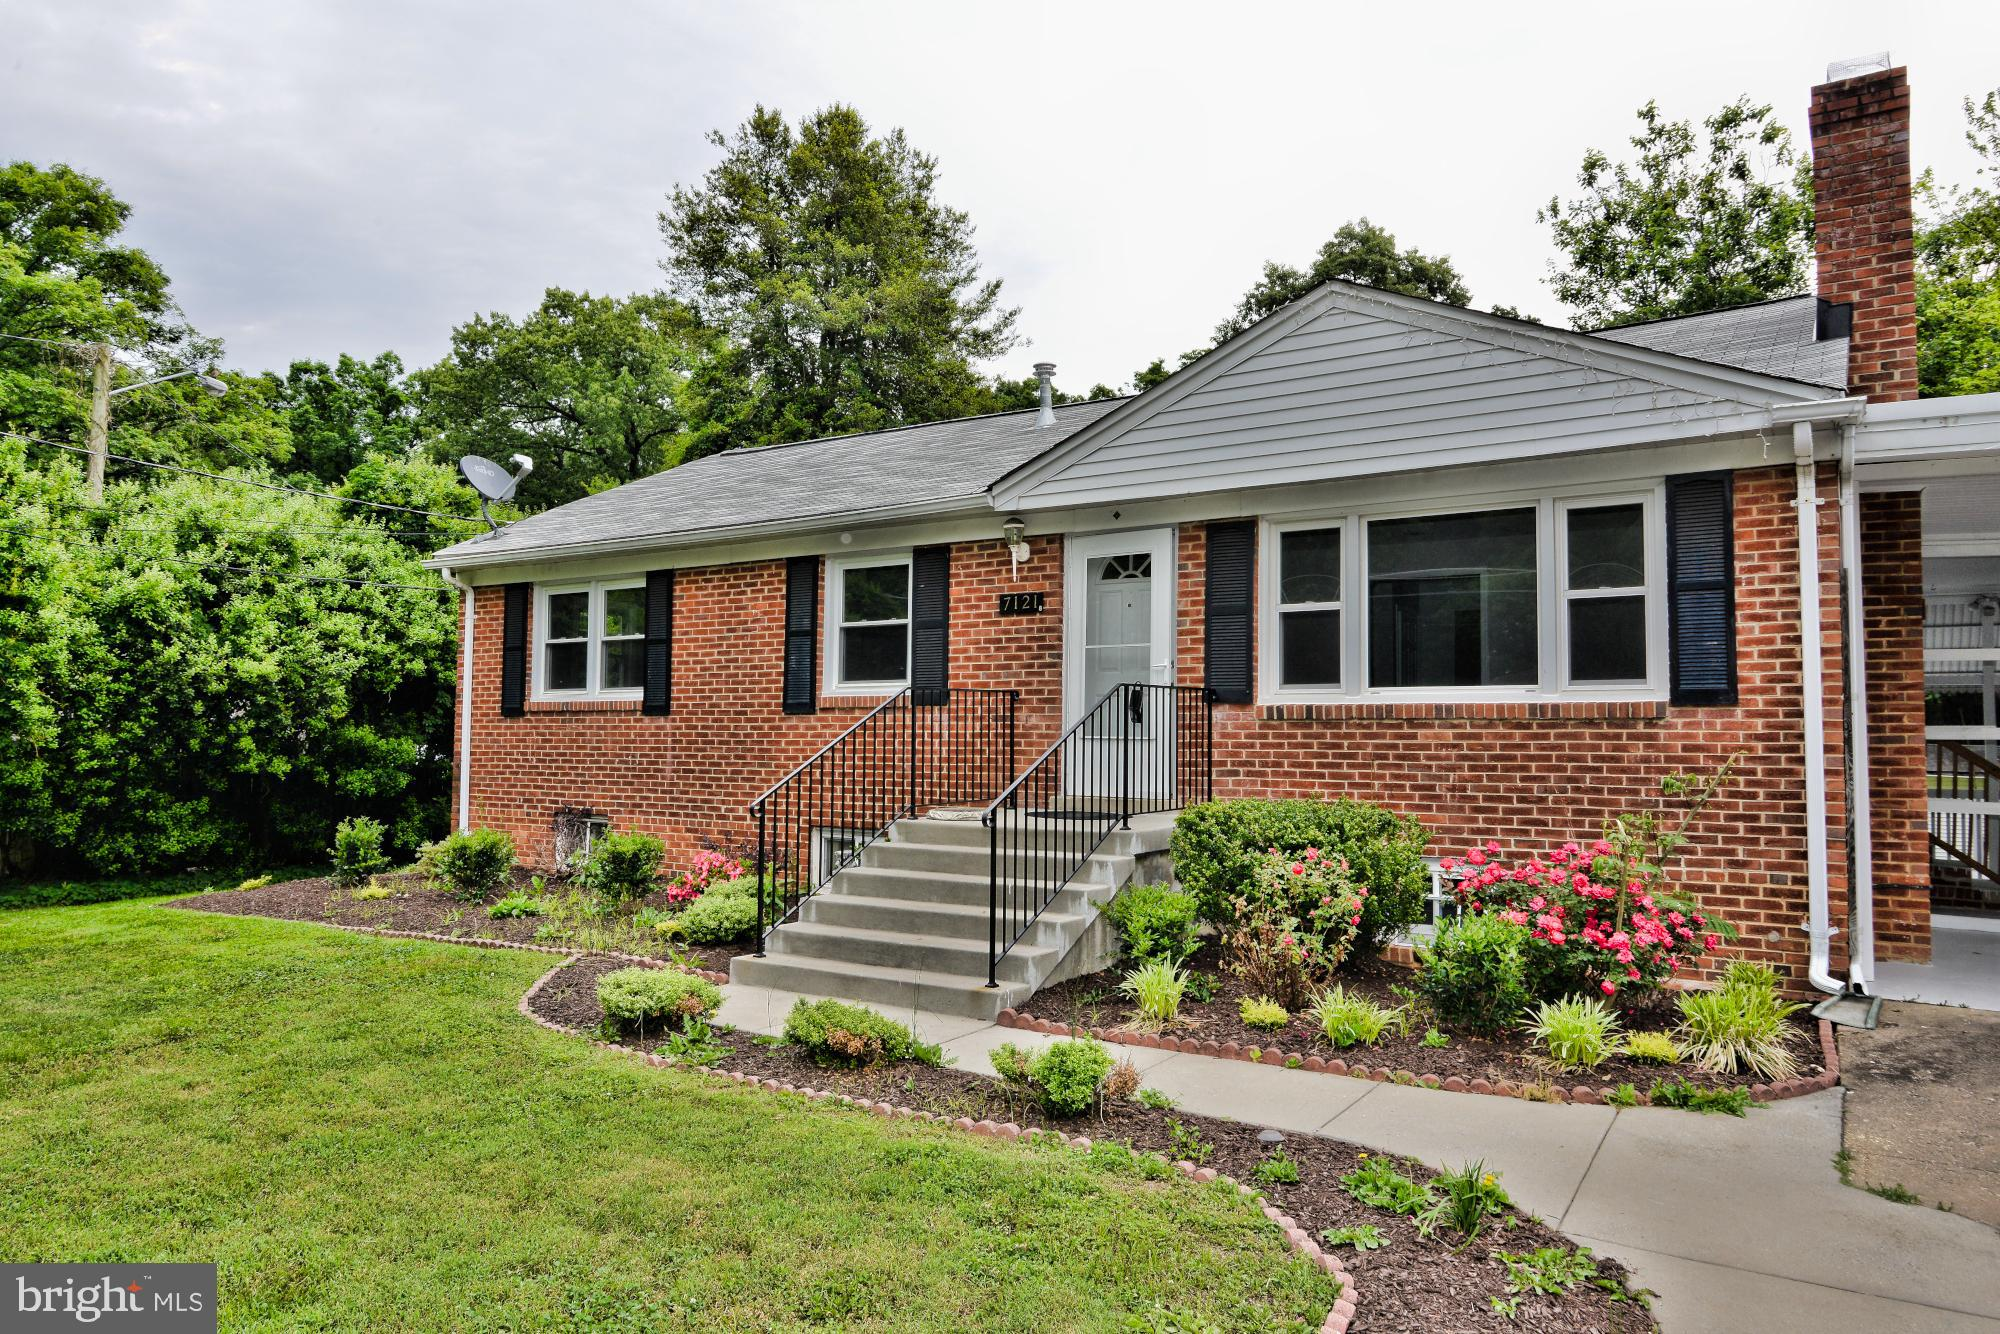 LOCATION, LOCATION, LOCATION! Close to Metro, Springfield Town Center and mayor highways. Large Master Suite, separate dining room, big finished space in lower level includes full bathroom, 2 bedrooms, Den/study ,and lots of storage spaces, vaulted ceilings, screened porch,2 level deck,fenced deep level rear yard,storage sheds, and easy quick commutes. This home will surprise you! Many updates!